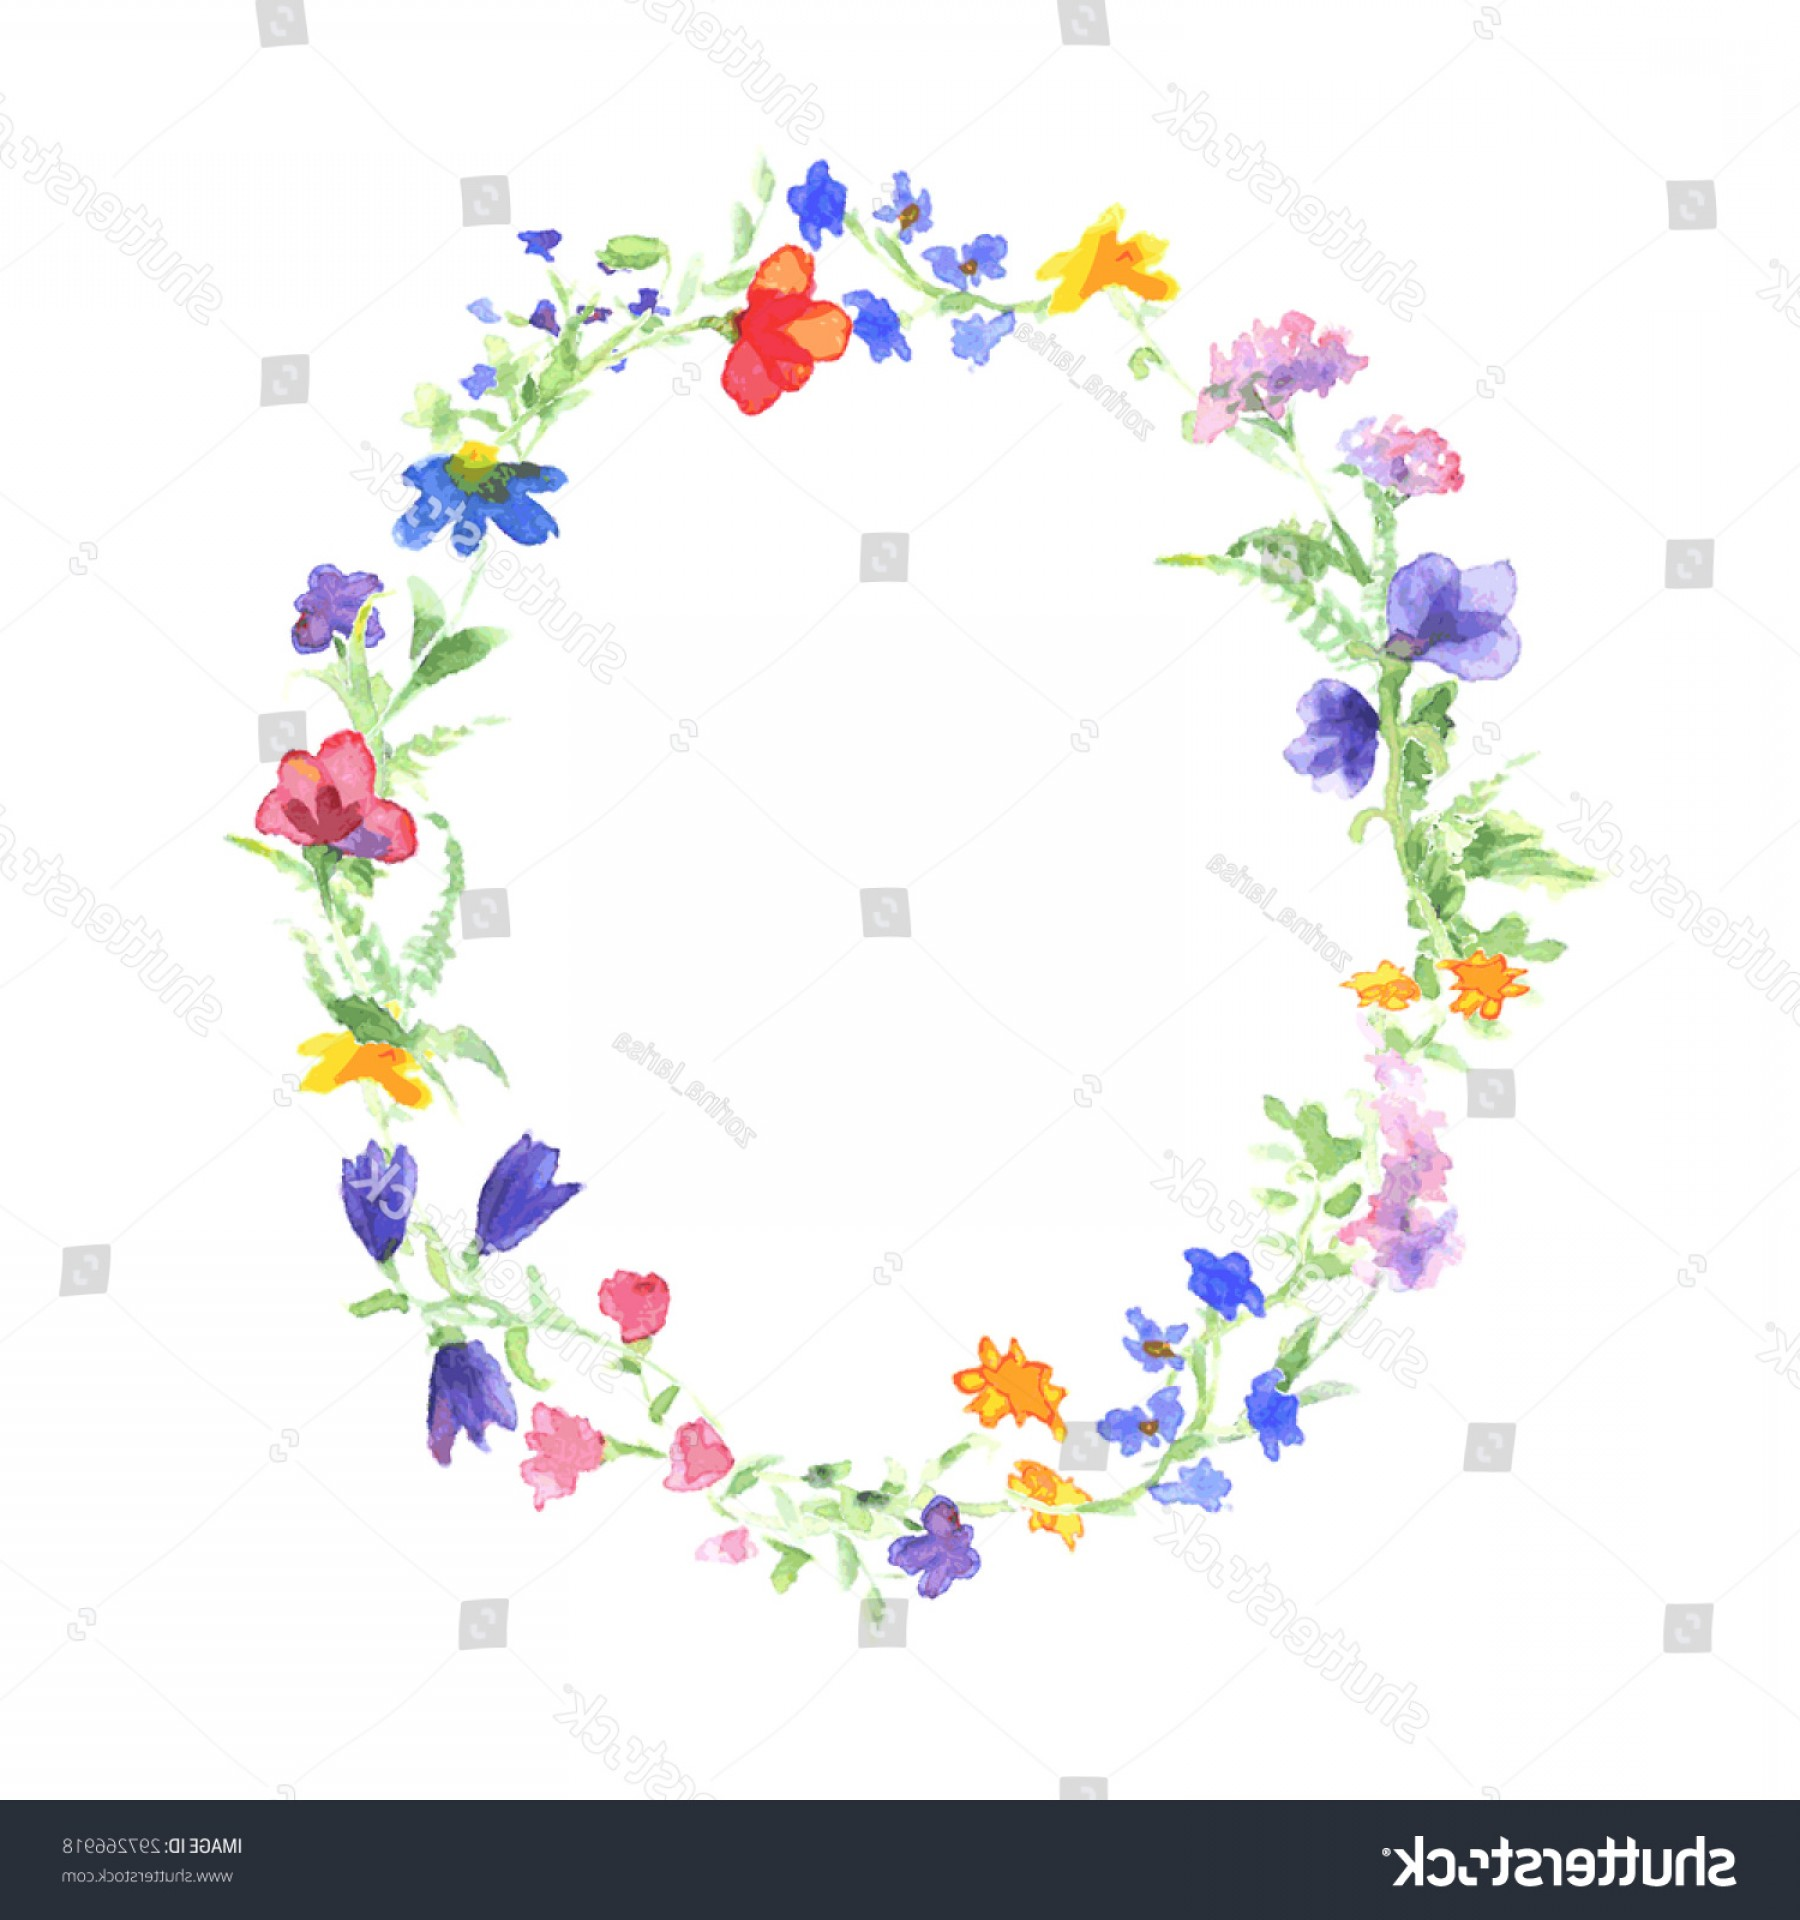 Summer Wreath Free Vector Watercolor: Shutterstock Vector Watercolor Wreath With Colorful